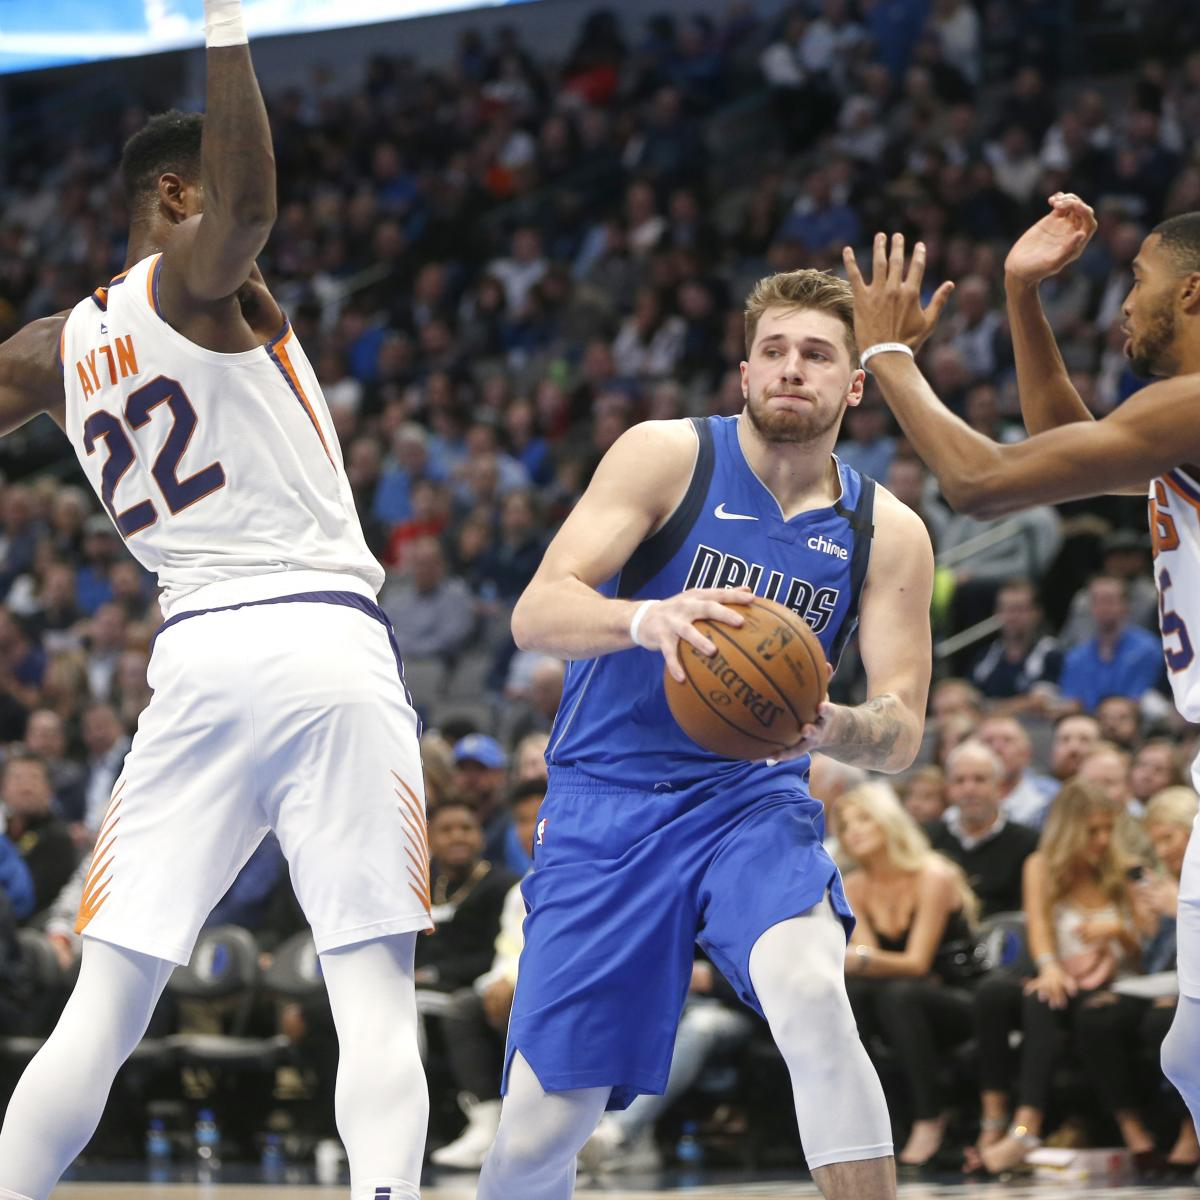 Luka Doncic Plans to Return from Ankle Injury for Kings vs. Mavs: 'I'm Ready'